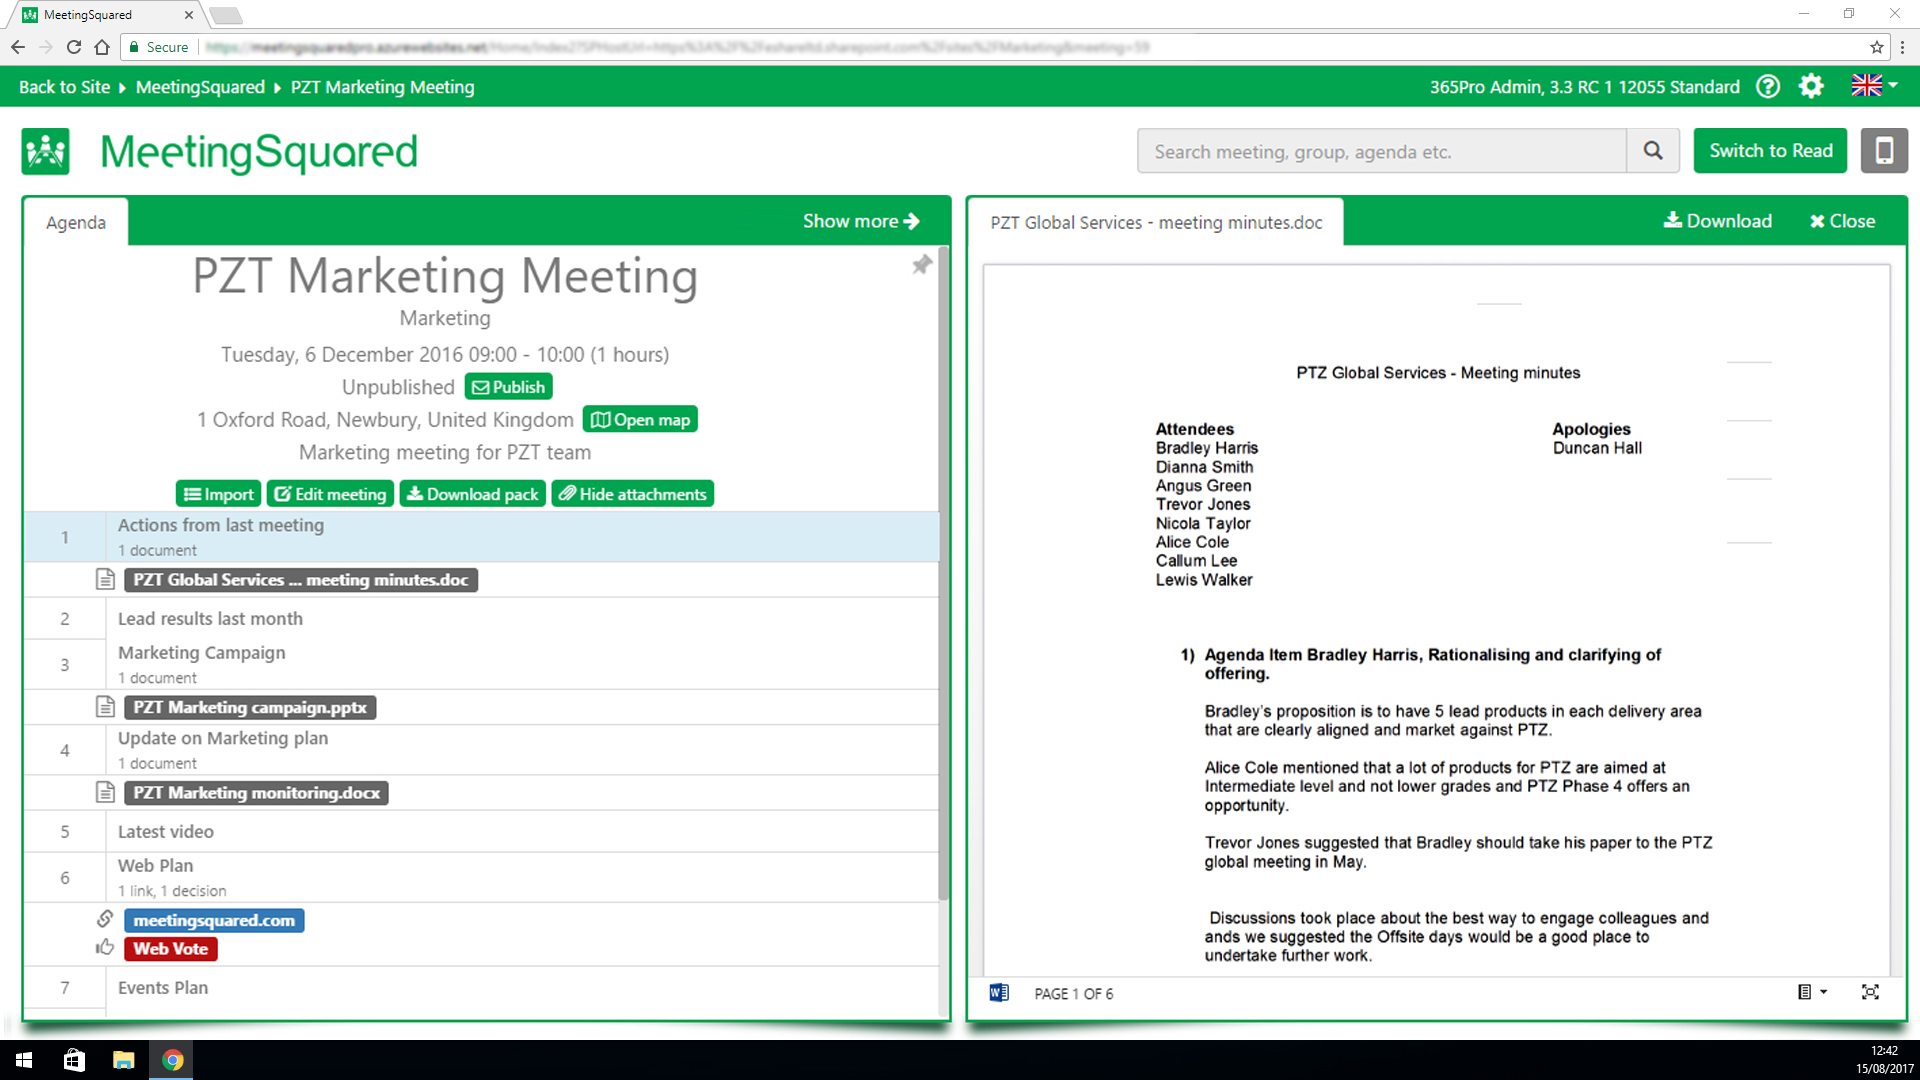 View meeting minutes